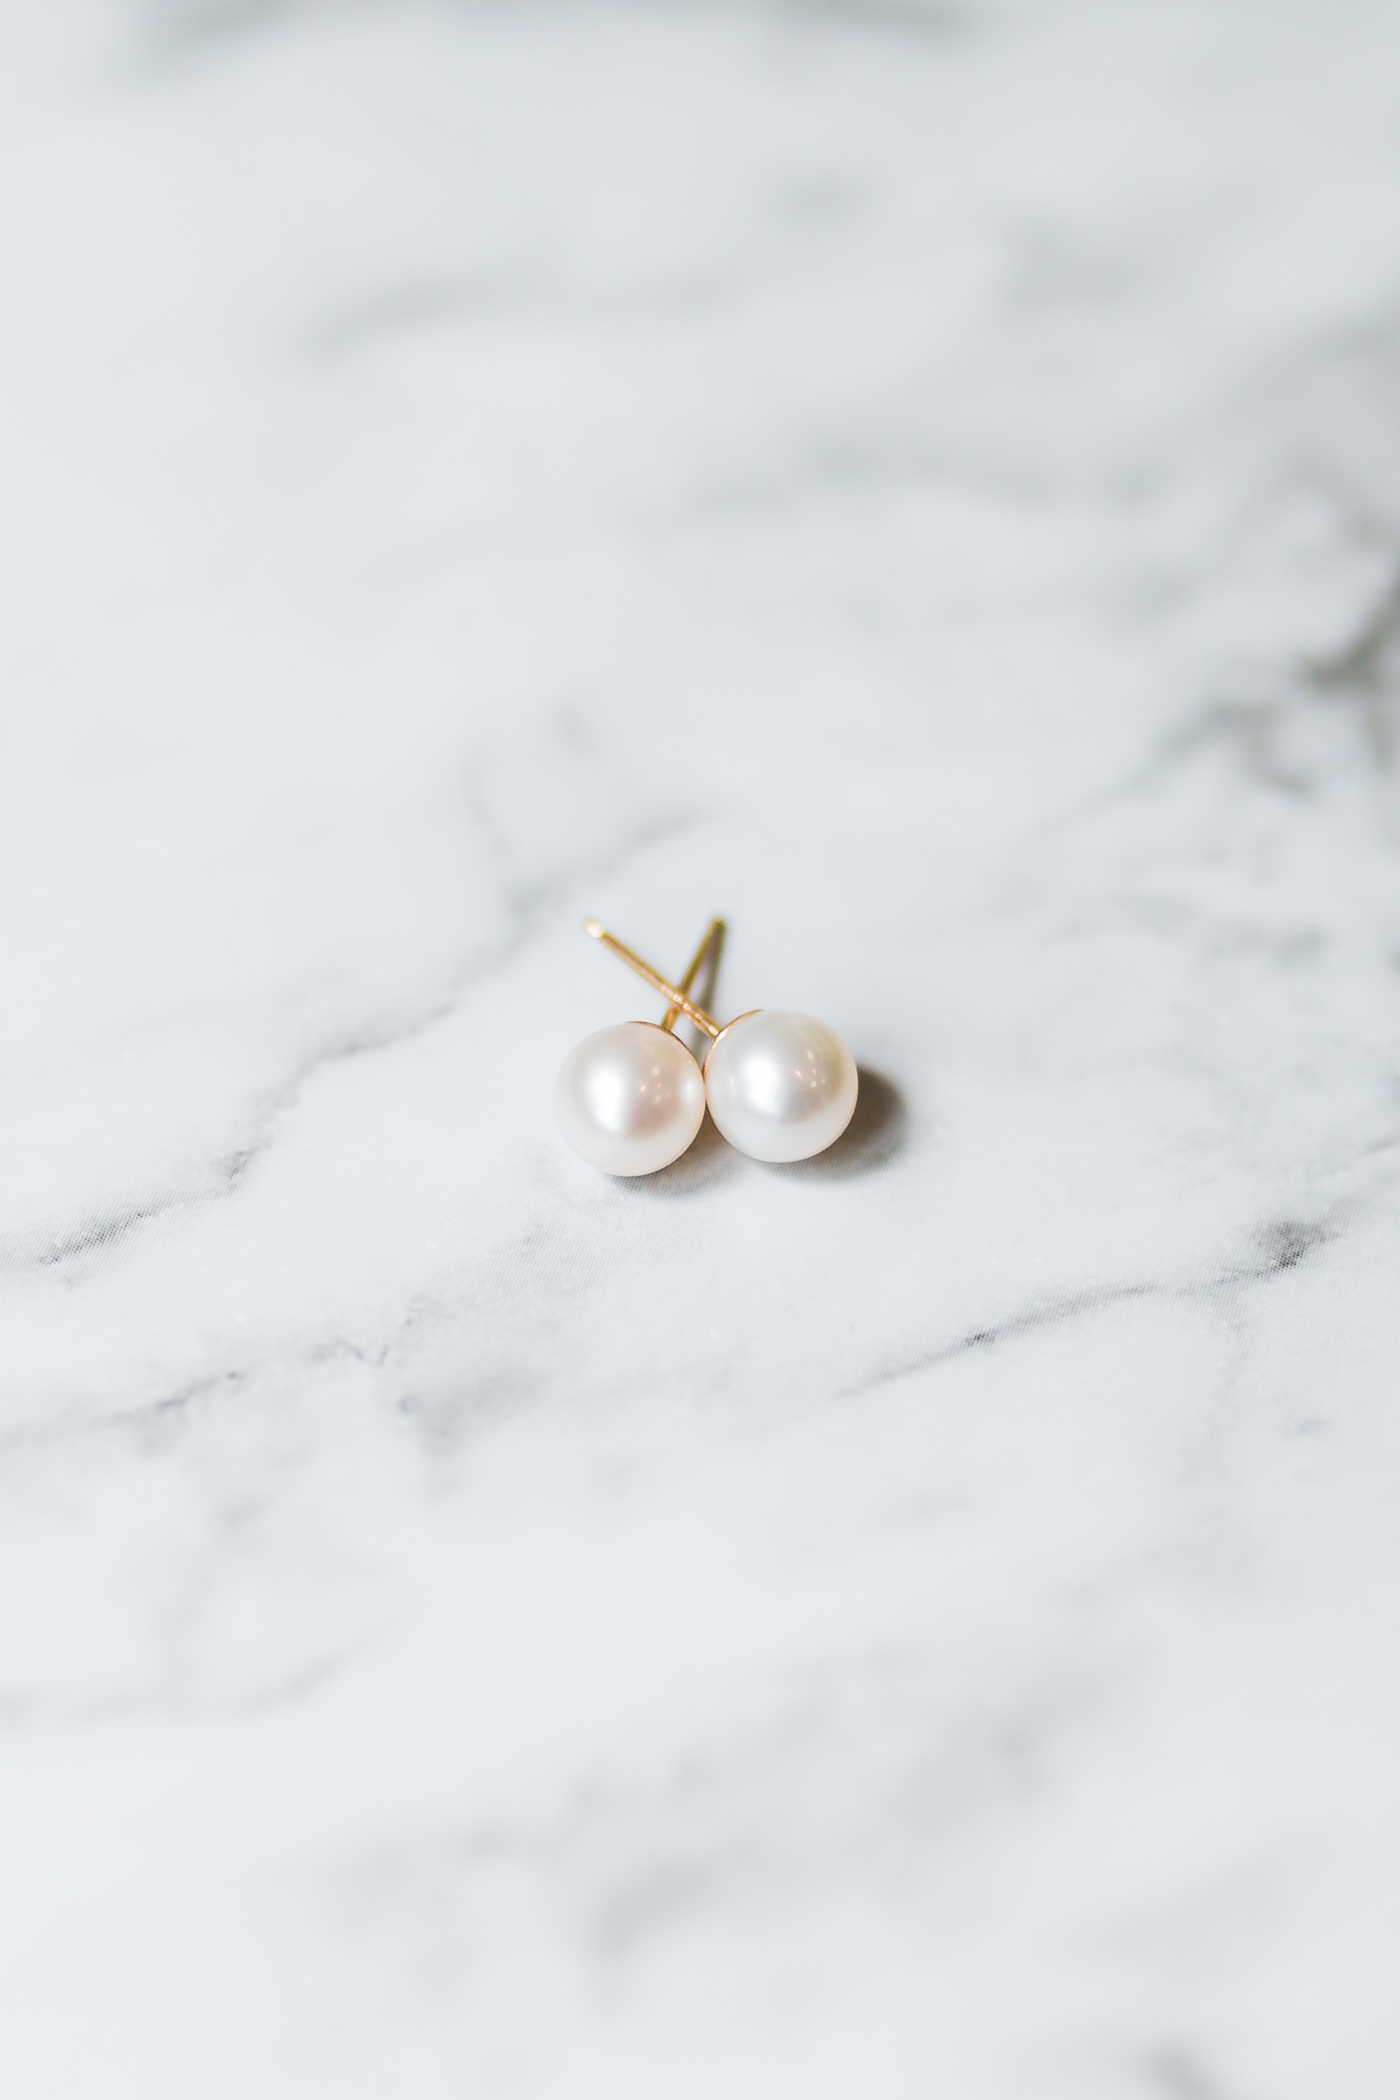 bridal details - pearl earrings inspo - top rated wedding photographer in Annapolis